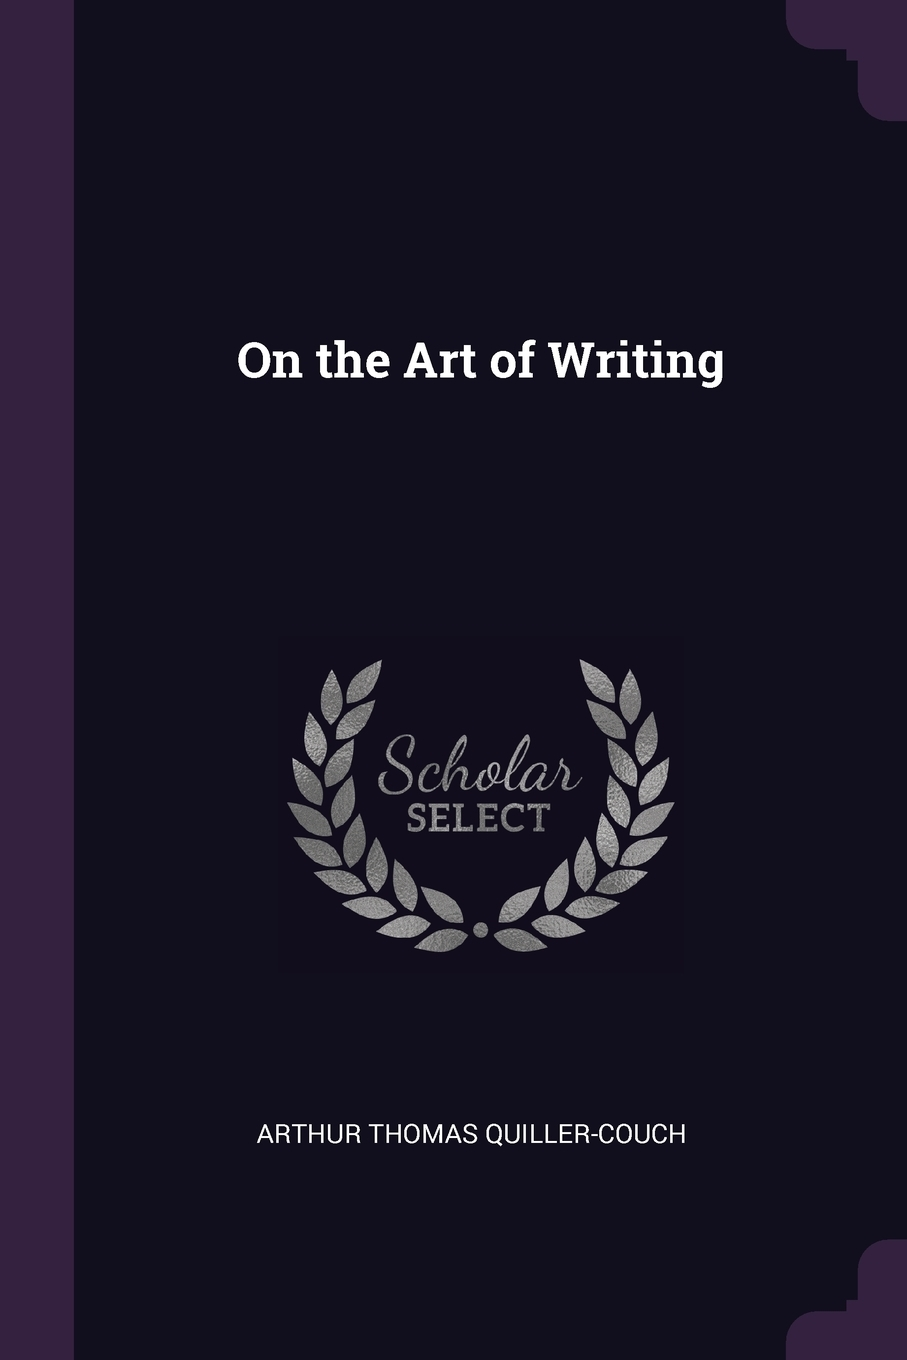 Arthur Thomas Quiller-Couch. On the Art of Writing